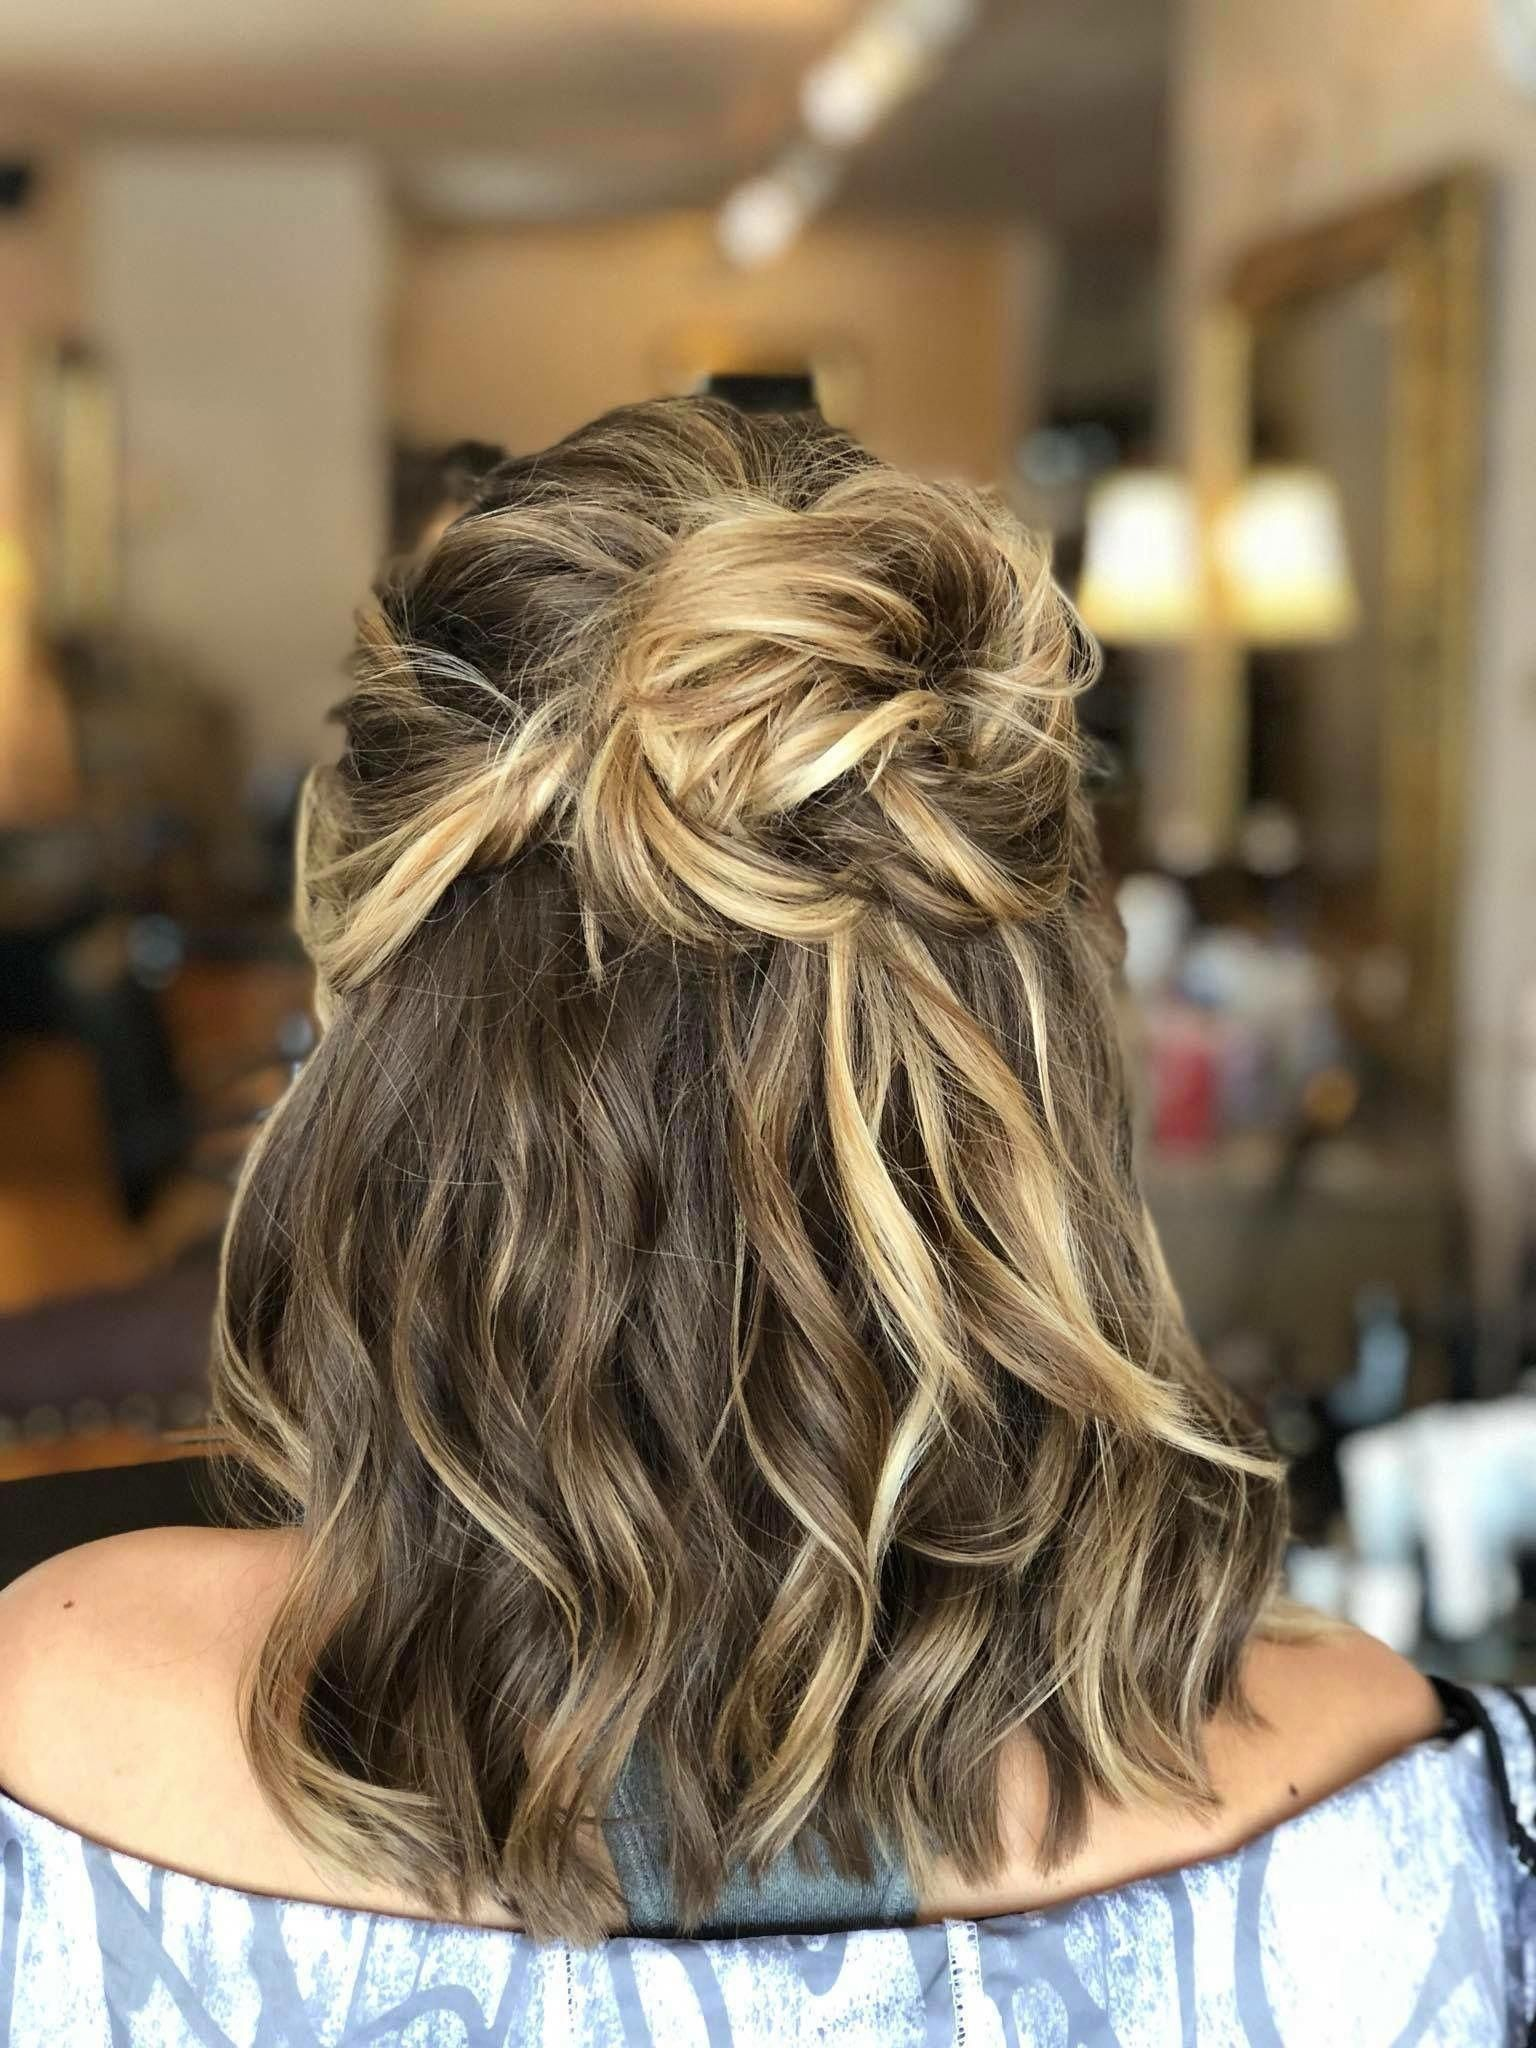 Prom Hairstyles Half Up Half Down Promhairstyleshalfuphalfdown Prom Hairstyles For Short Hair Half Up Half Down Hair Prom Half Up Hair